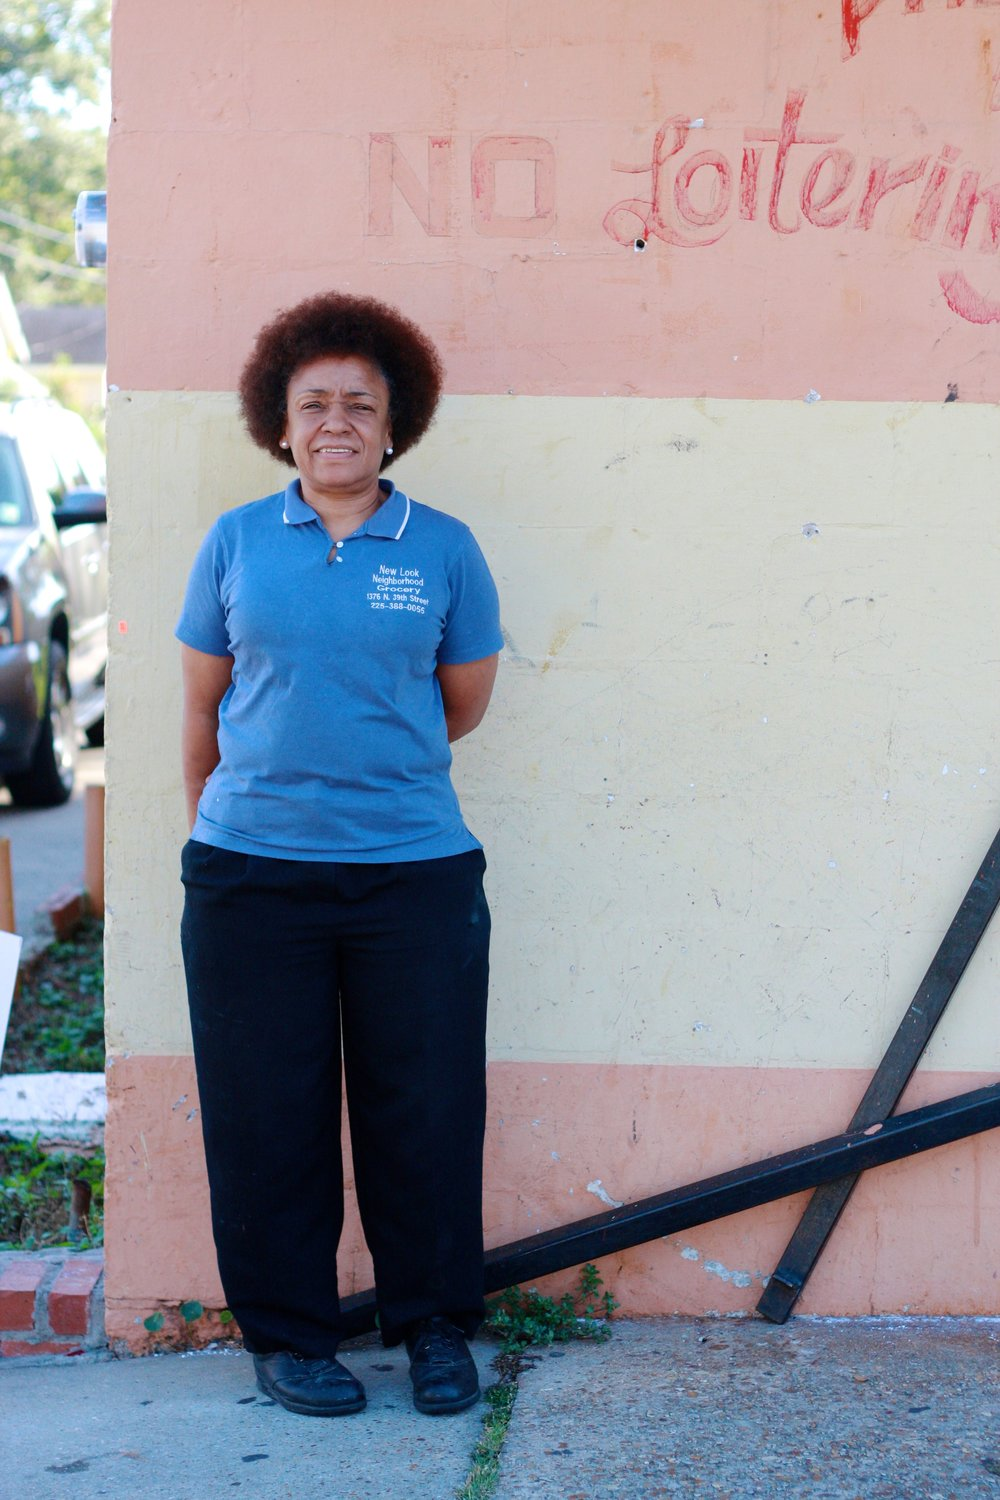 """""""We have owned this store for twelve years we have seen kids come through and come back. We always nudge them to finish school and get into a good career and we work with the MLK Center to put the word out and help them get jobs. One thing that holds people back here is transportation. If the bus comes late then they're late to work, or they get to the other side of town and they can't get back because of when transit runs. Then there's education- not all the resources are available to them and they may not know about it unless someone tells them. We try and always let people know about the opportunities out there,even if it's on the other side of town."""""""